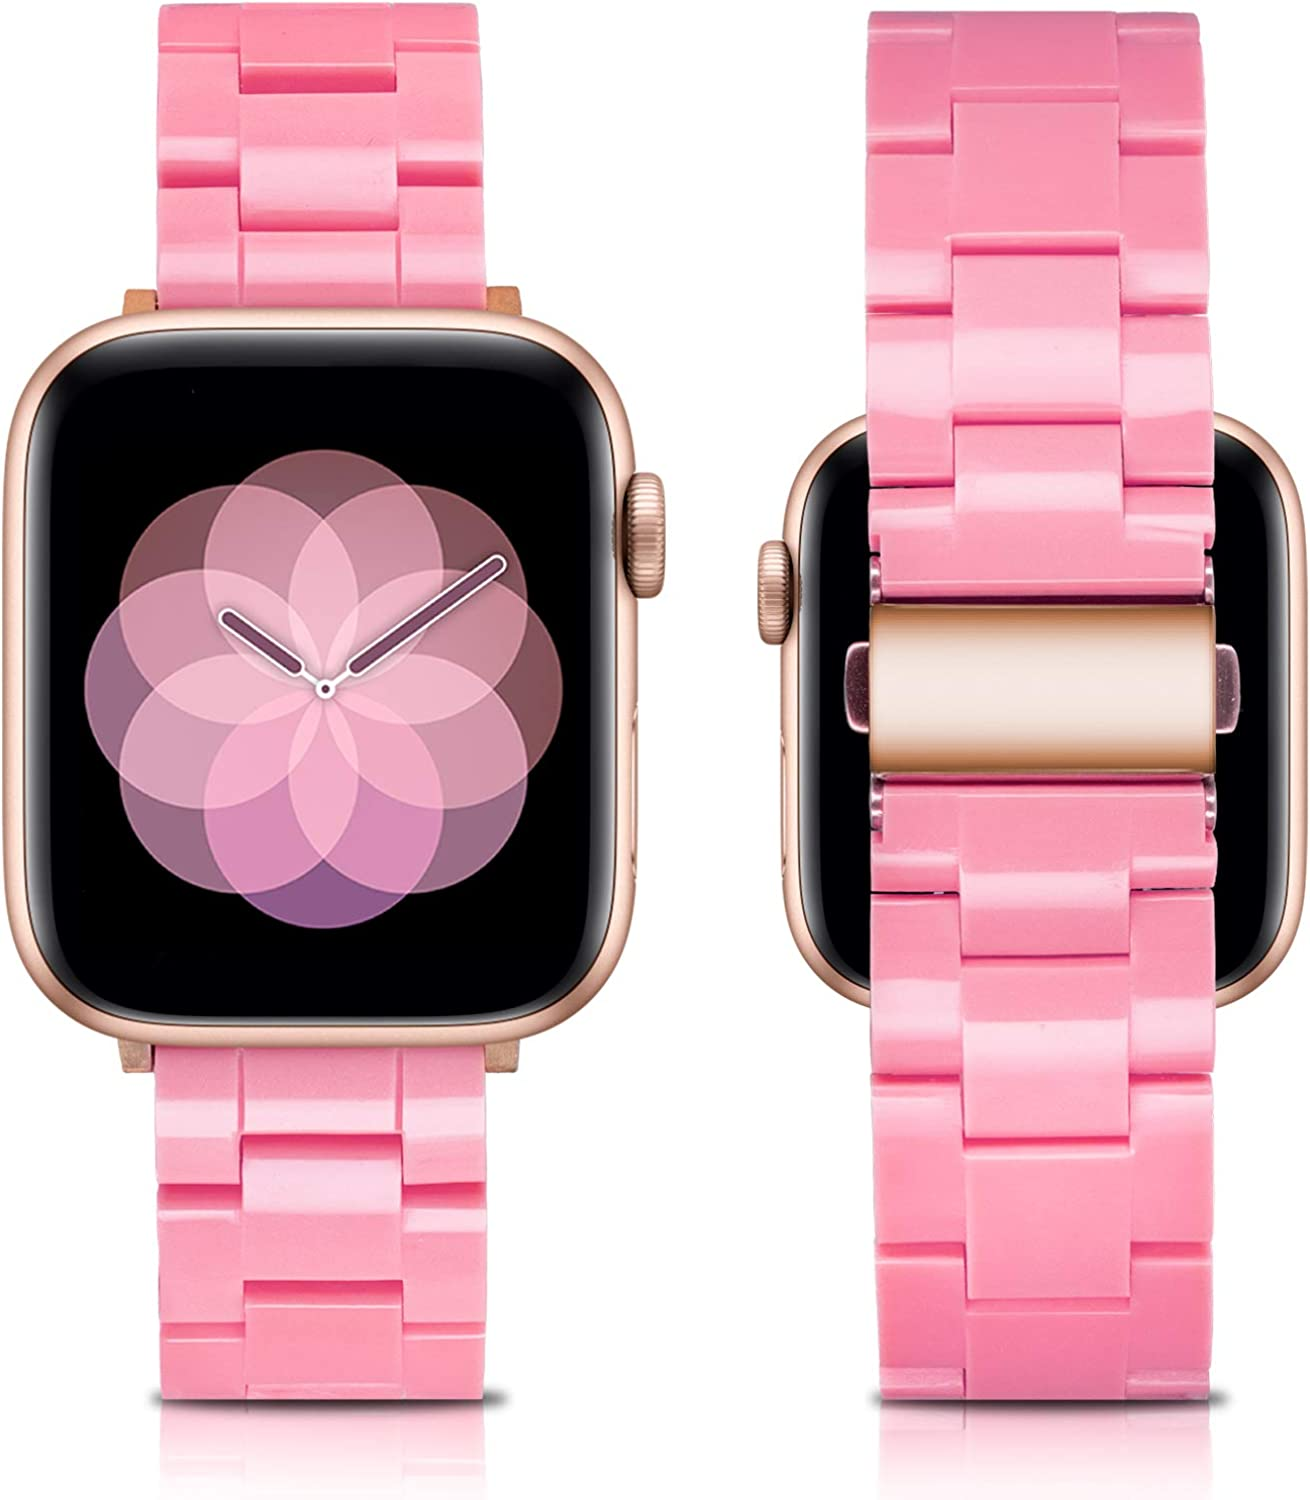 LINXUXIE Resin Band Compatible with Apple Watch Bands 38mm 40mm Series SE/6/5/4/3/2/1 Women Men,Waterproof and Stylish Replacement Strap With Stainless Steel Buckle For iWatch